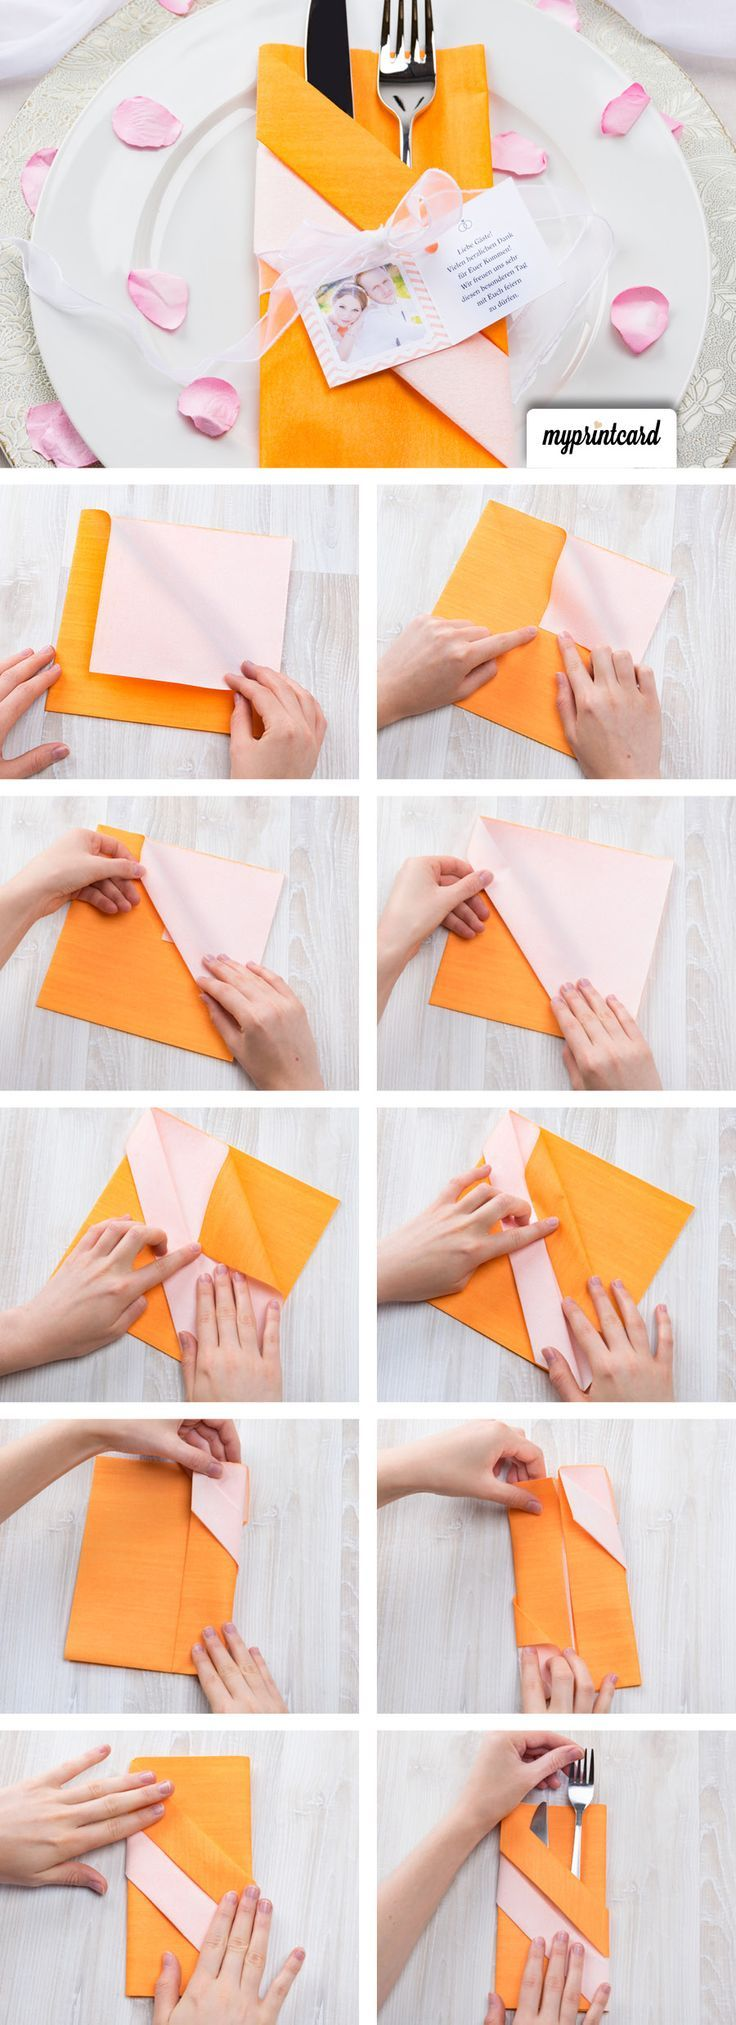 kreativ servietten falten die bestecktasche napkin folding napkins diy pillows